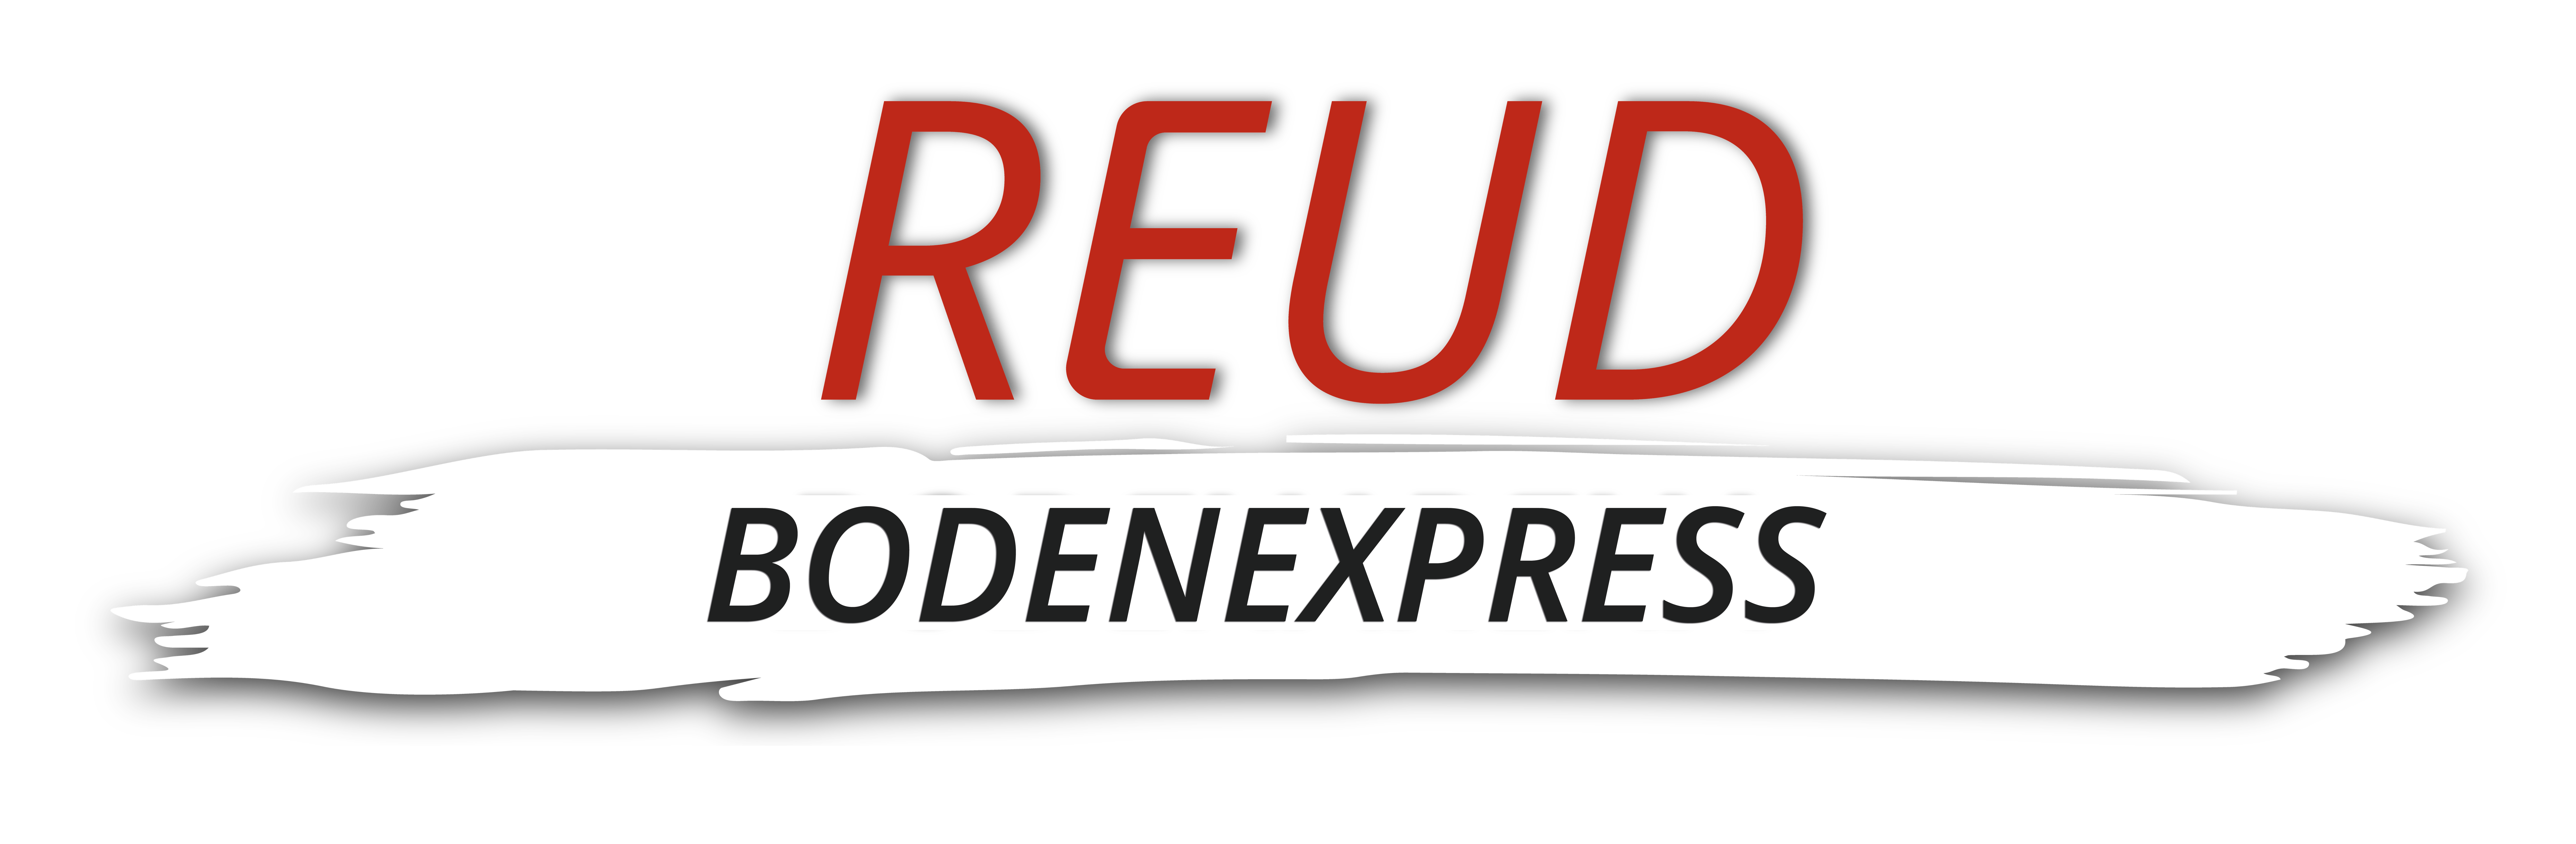 logo reud bodenexpress